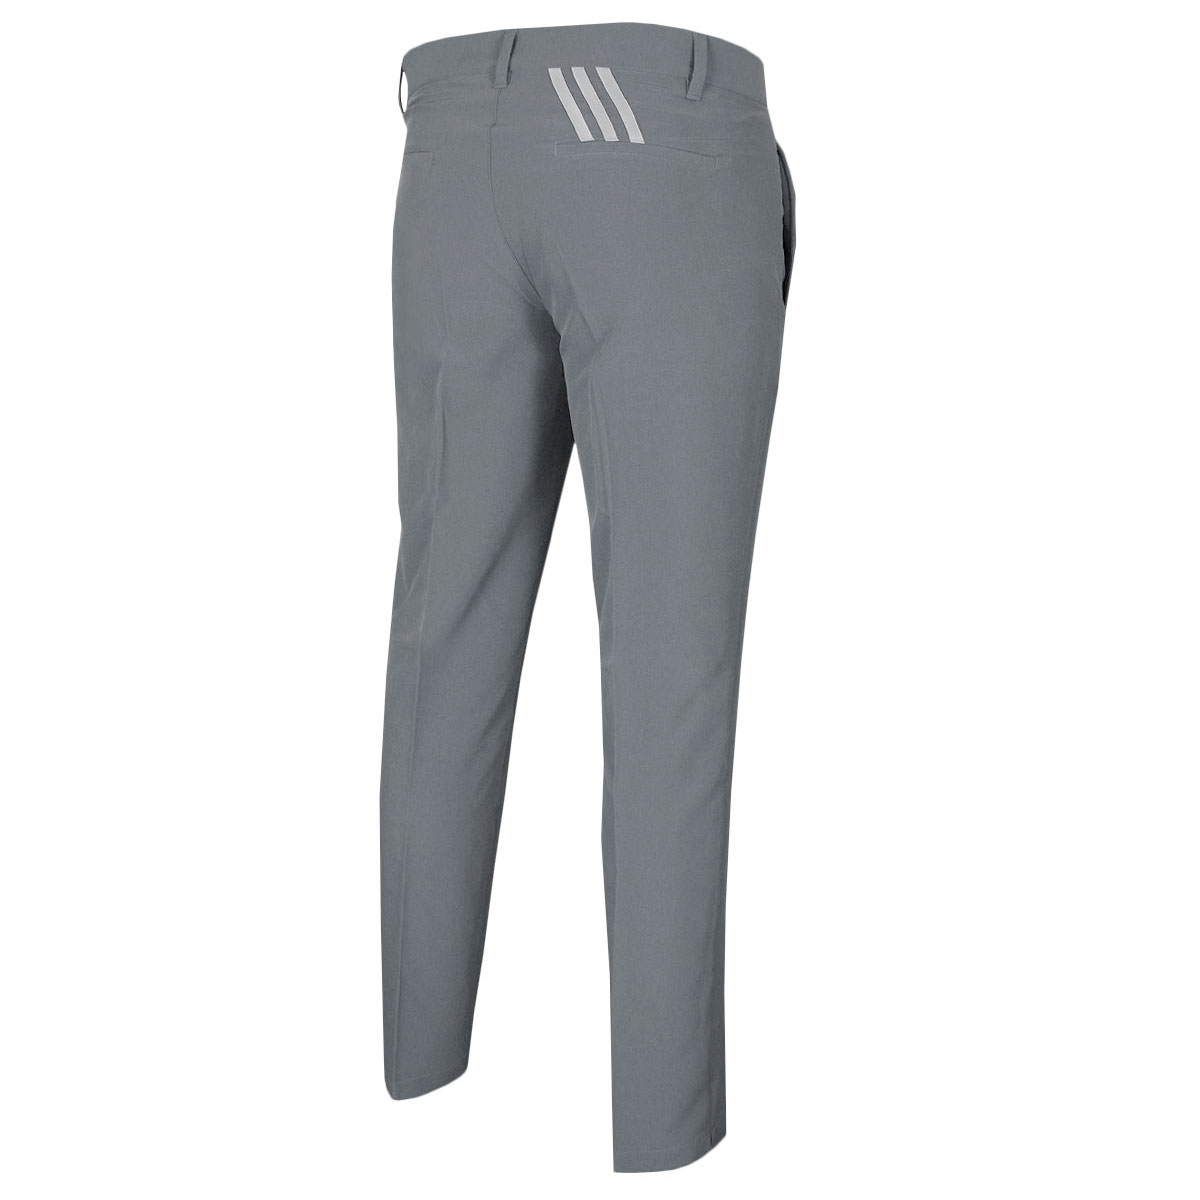 adidas-Golf-Mens-Ultimate-3-Stripes-Stretch-Pant-Trousers-44-OFF-RRP Indexbild 24